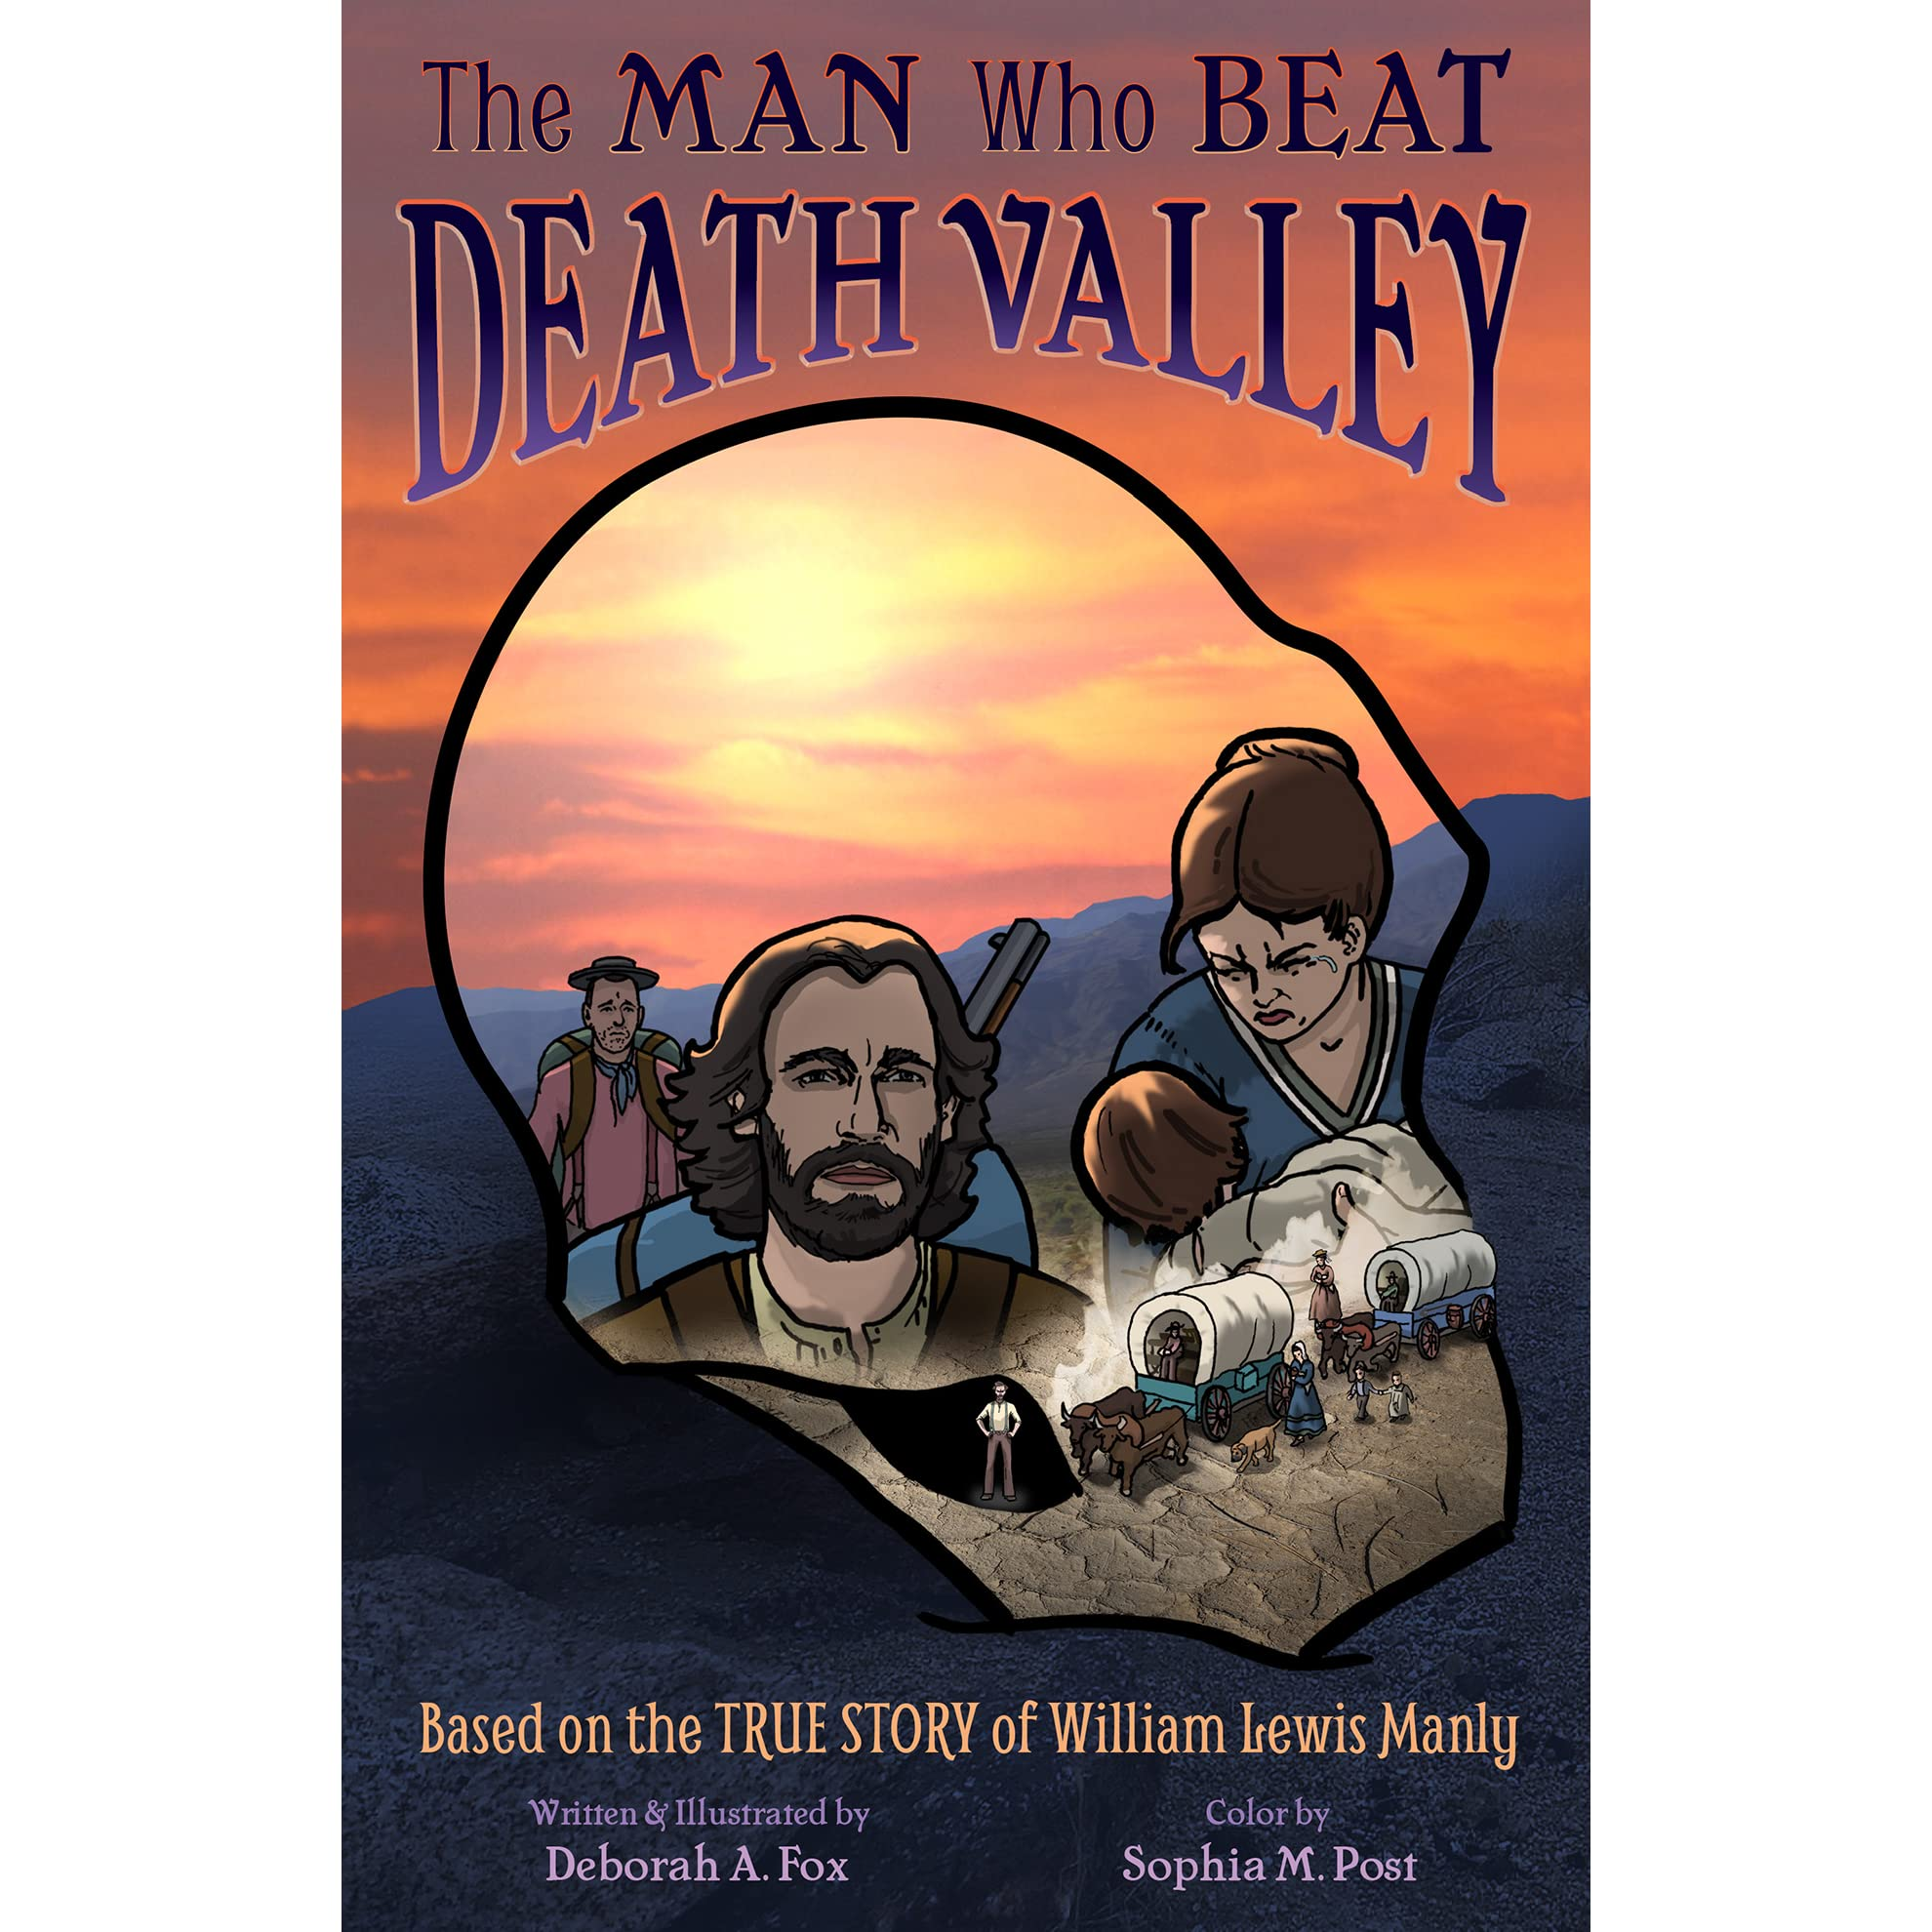 The Man Who Beat Death Valley - Based on the True Story of William Lewis Manly